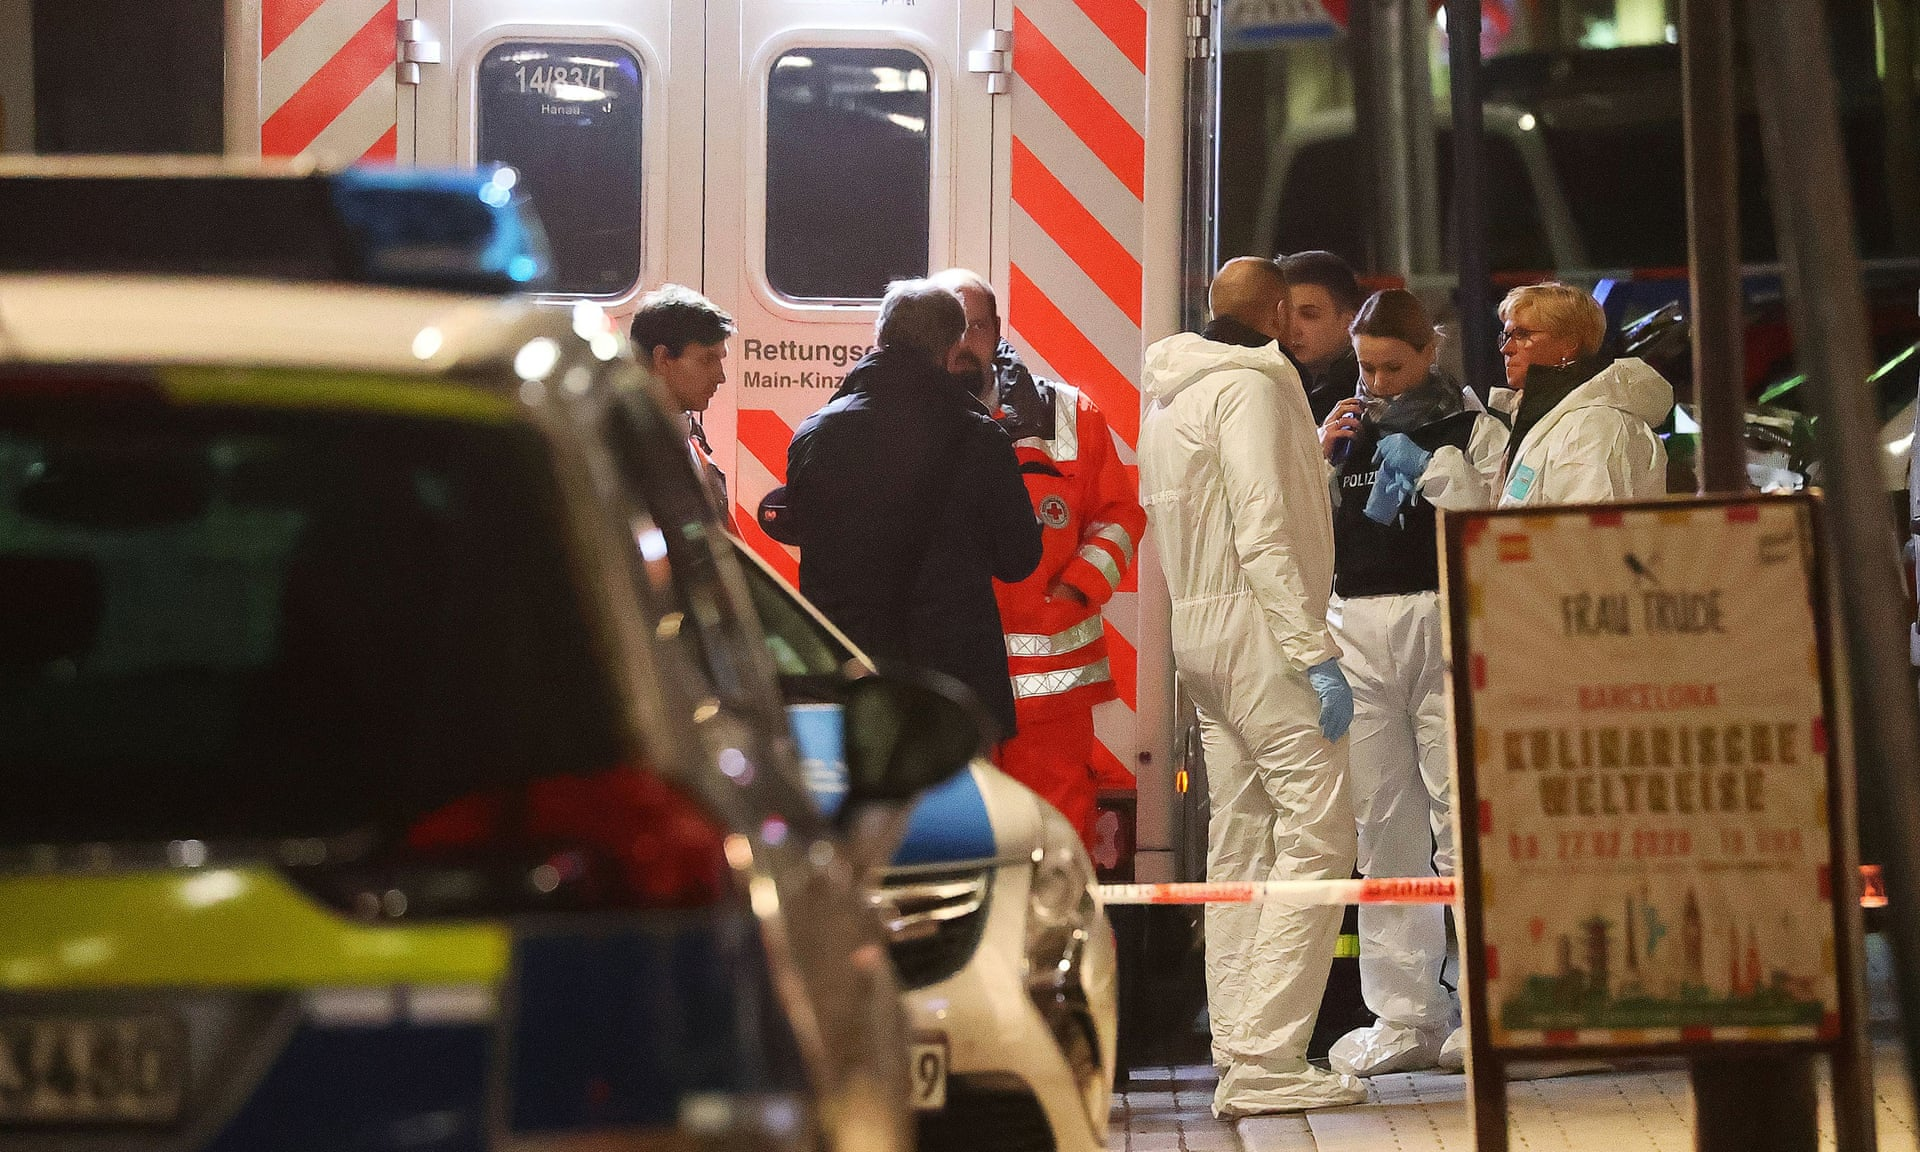 11 Dead After Two Shootings In Hanau, Germany, How Much Is Enough For EU?